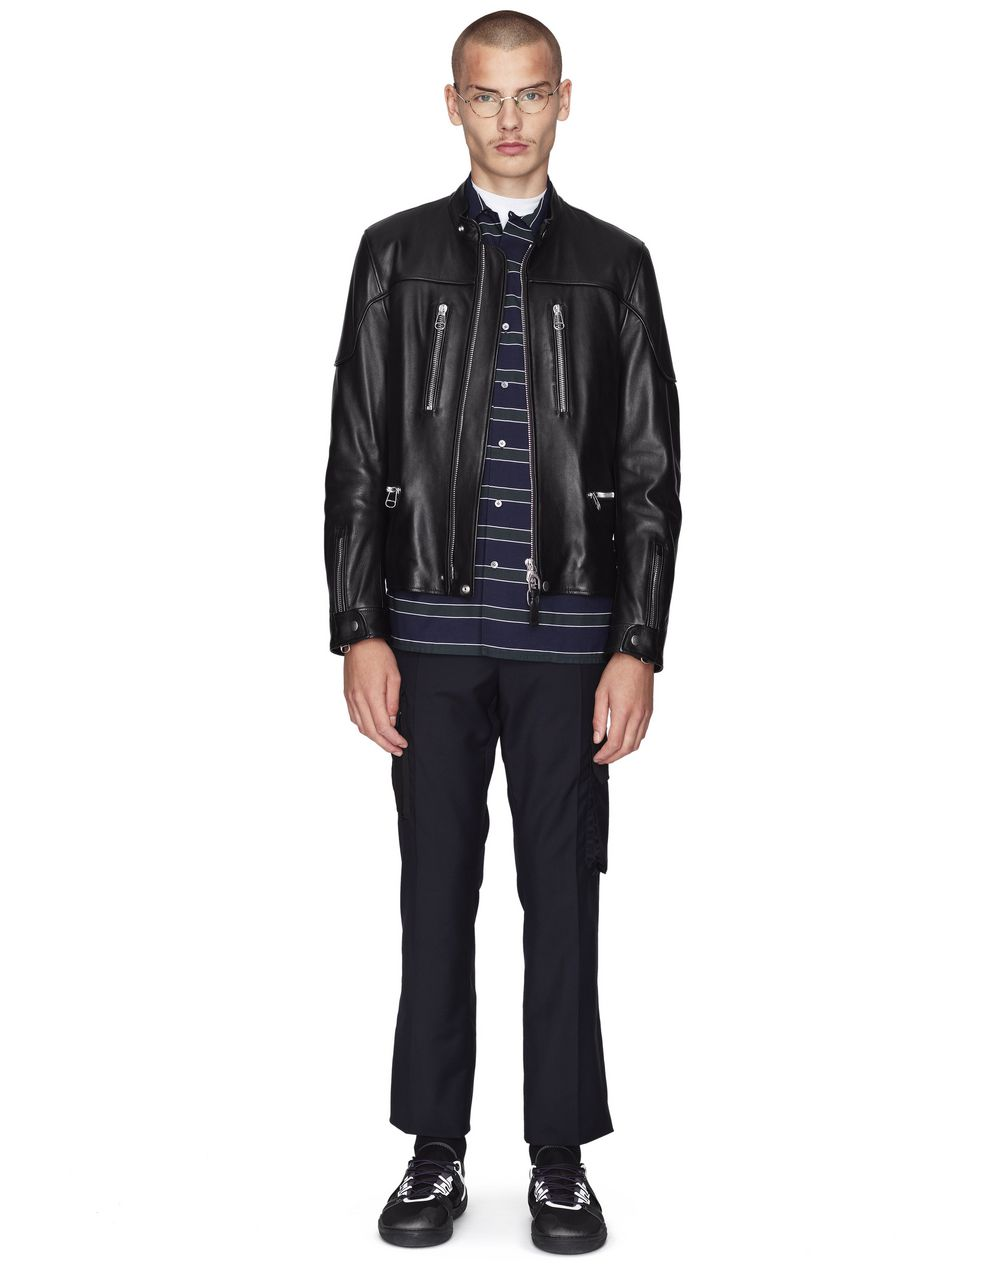 BLACK LAMBSKIN LEATHER BIKER JACKET  - Lanvin